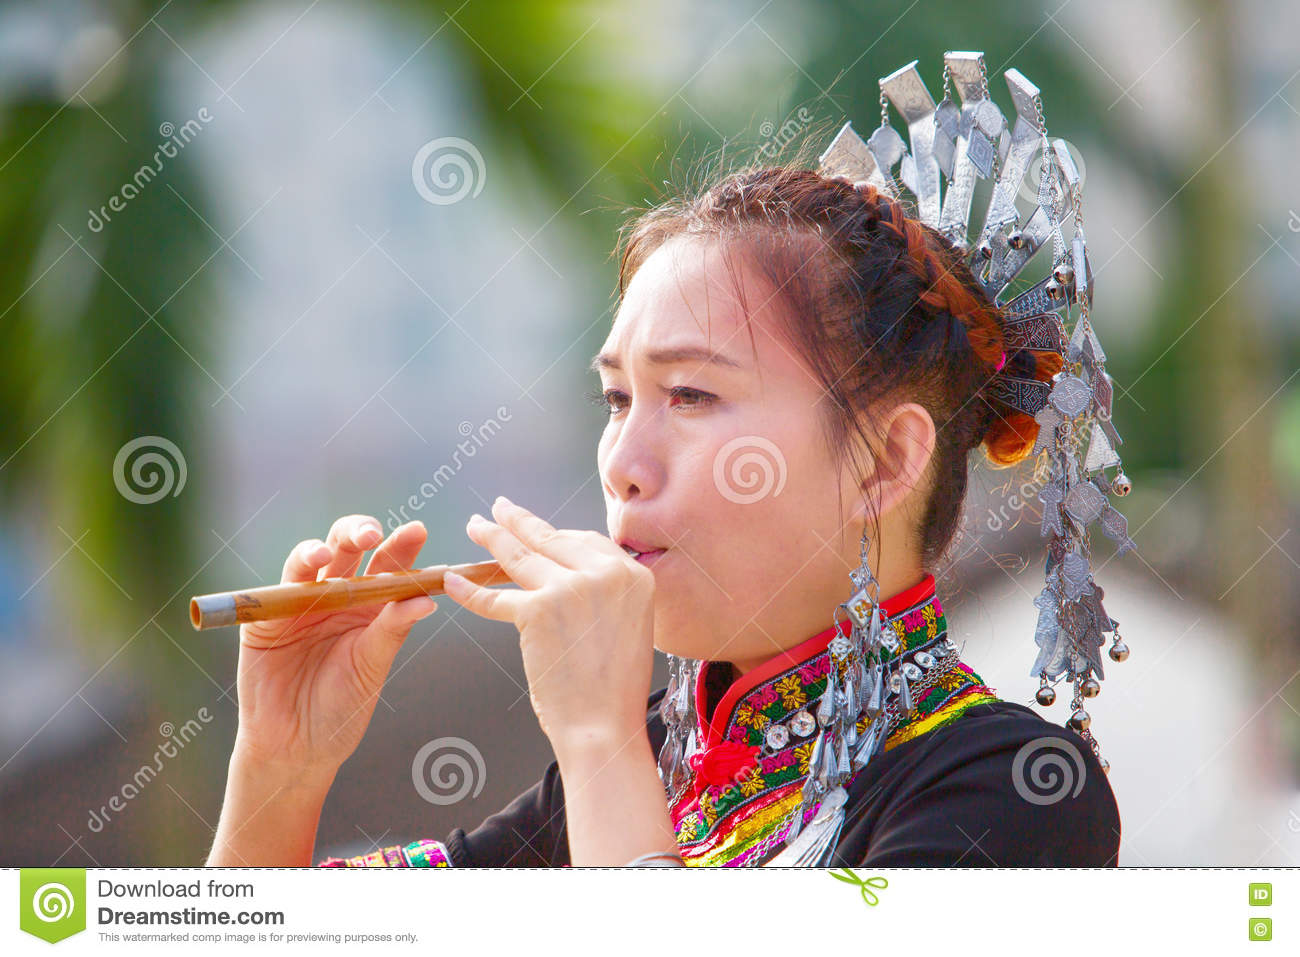 The Hmong women on their traditional dresses is playing their own music instrument